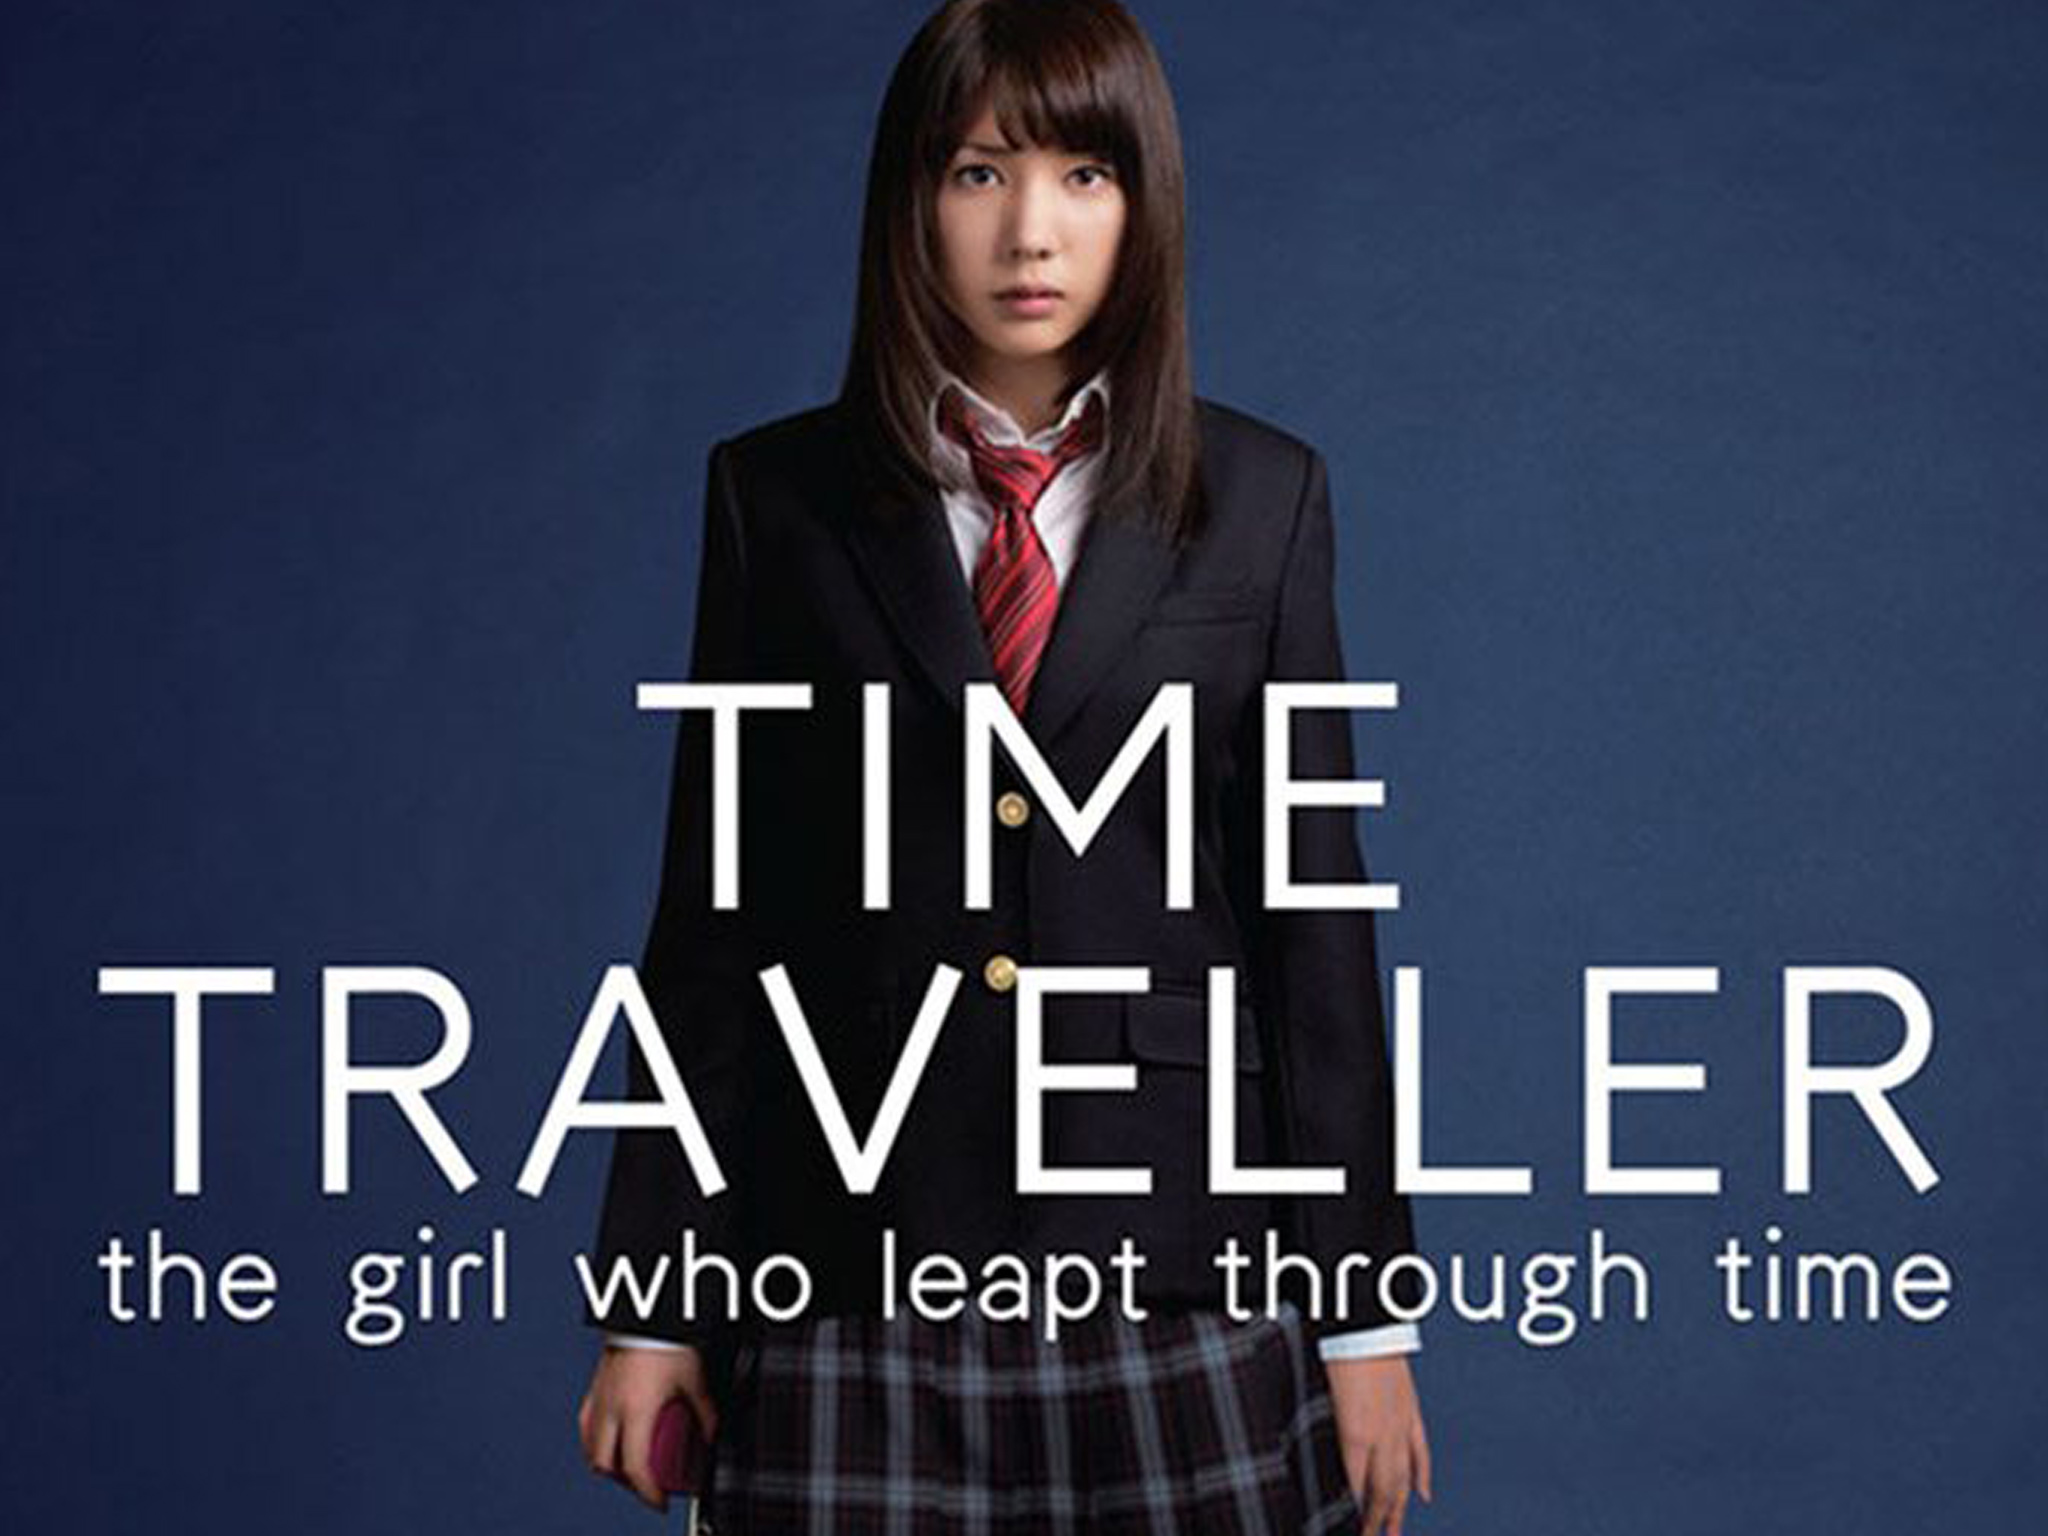 Based on the successful anime, a teen travels back in time to find a mysterious man from her mother's past. Directed by Masaaki Taniguchi.